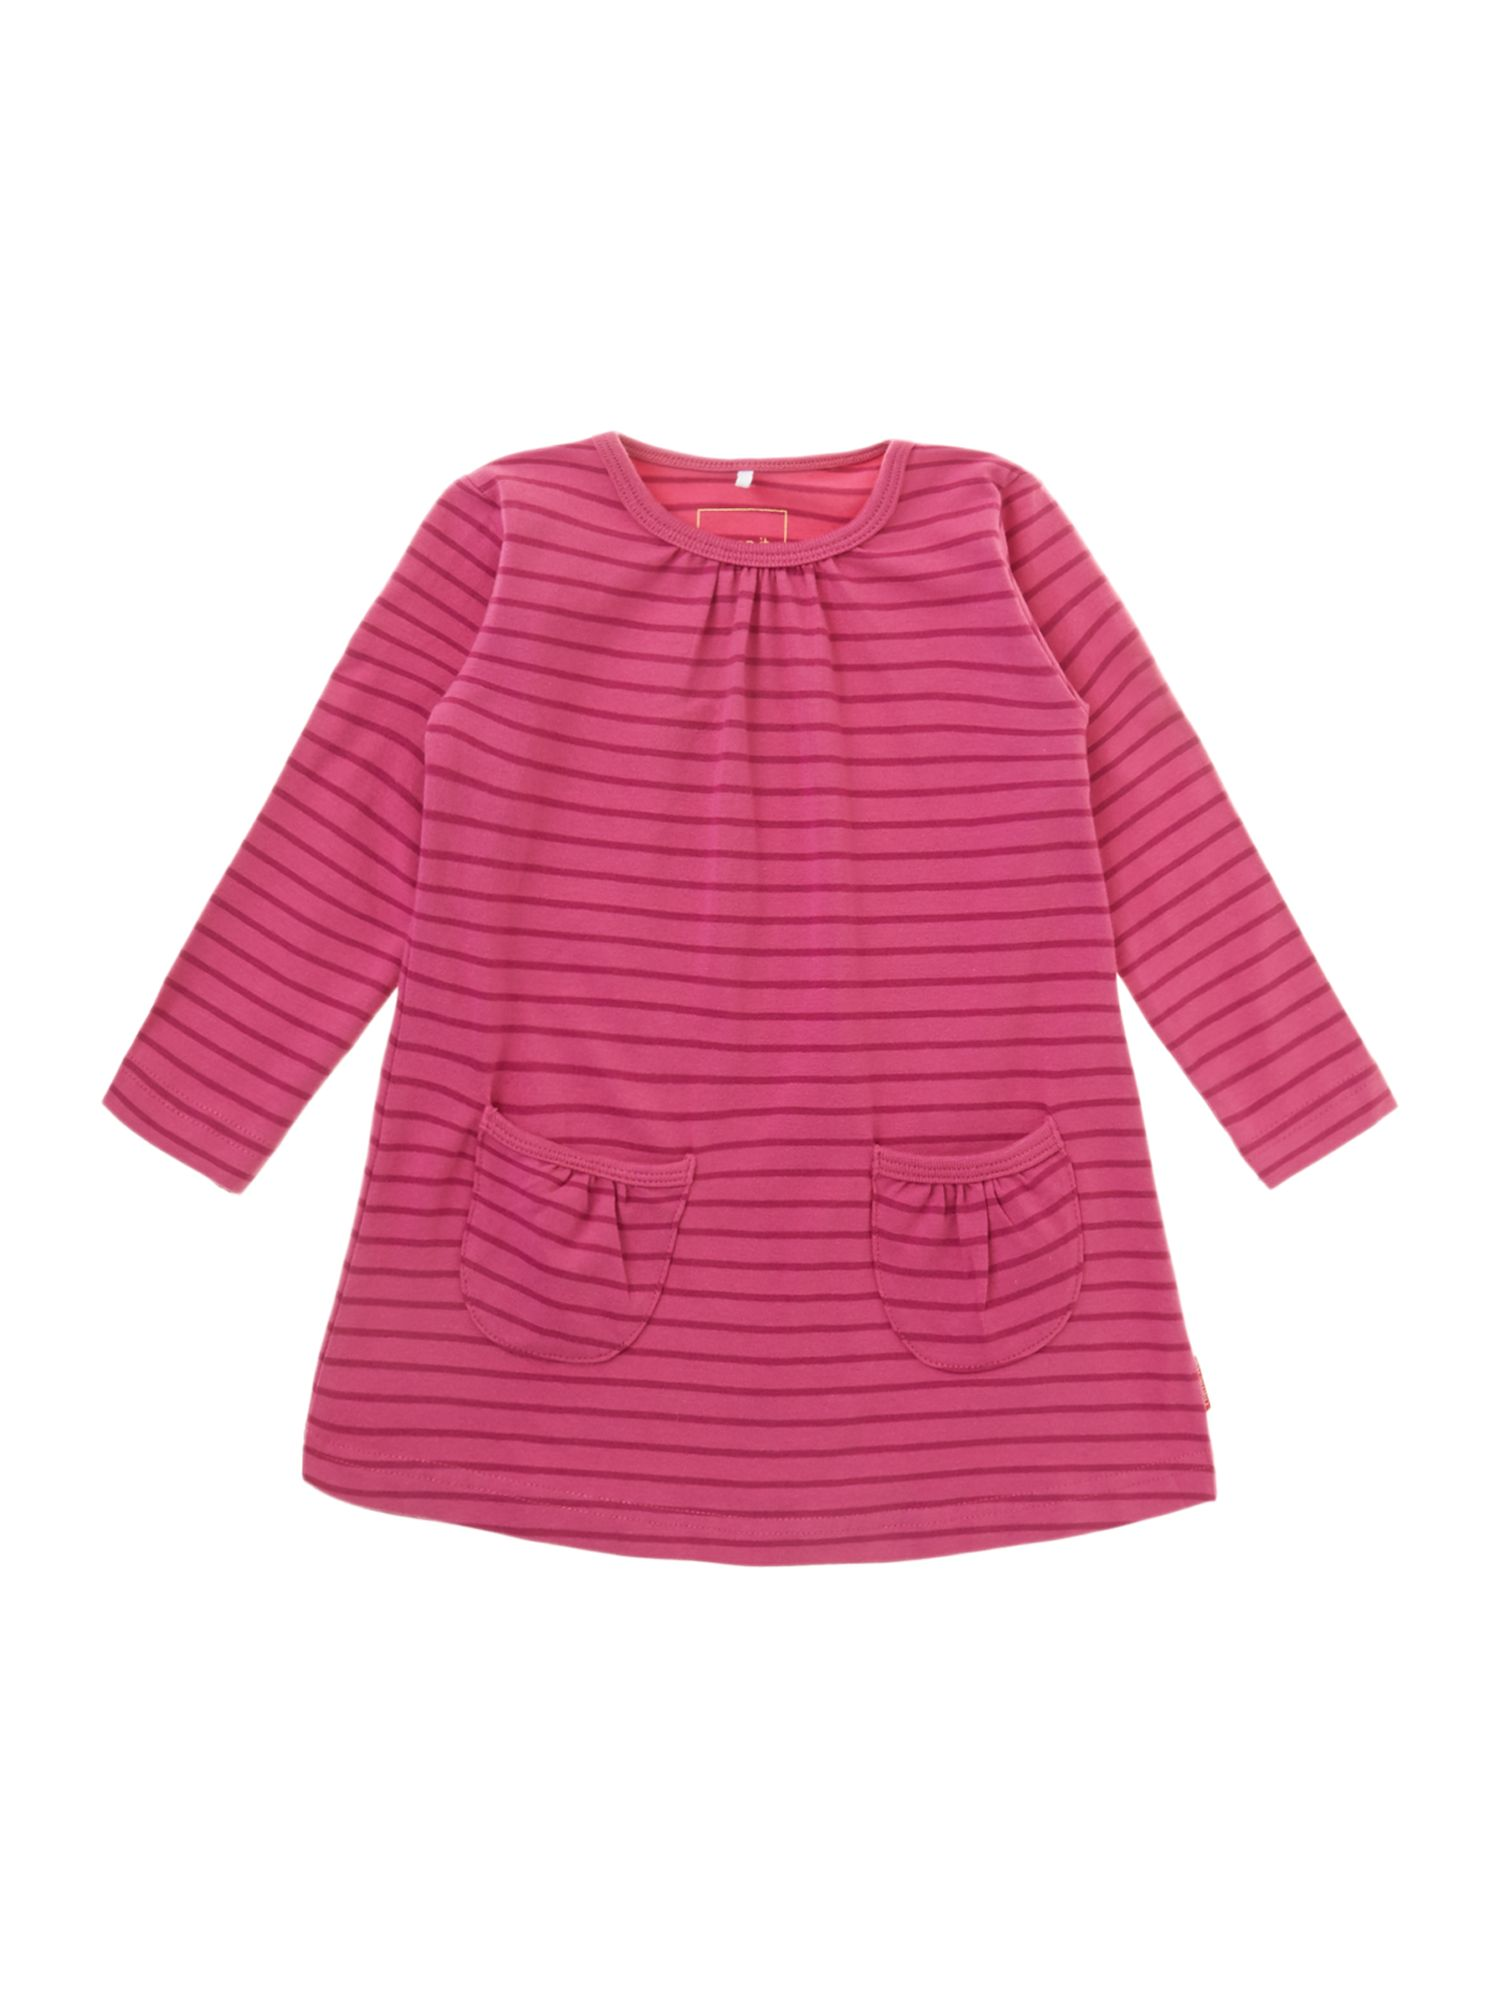 Girls stripe tunic